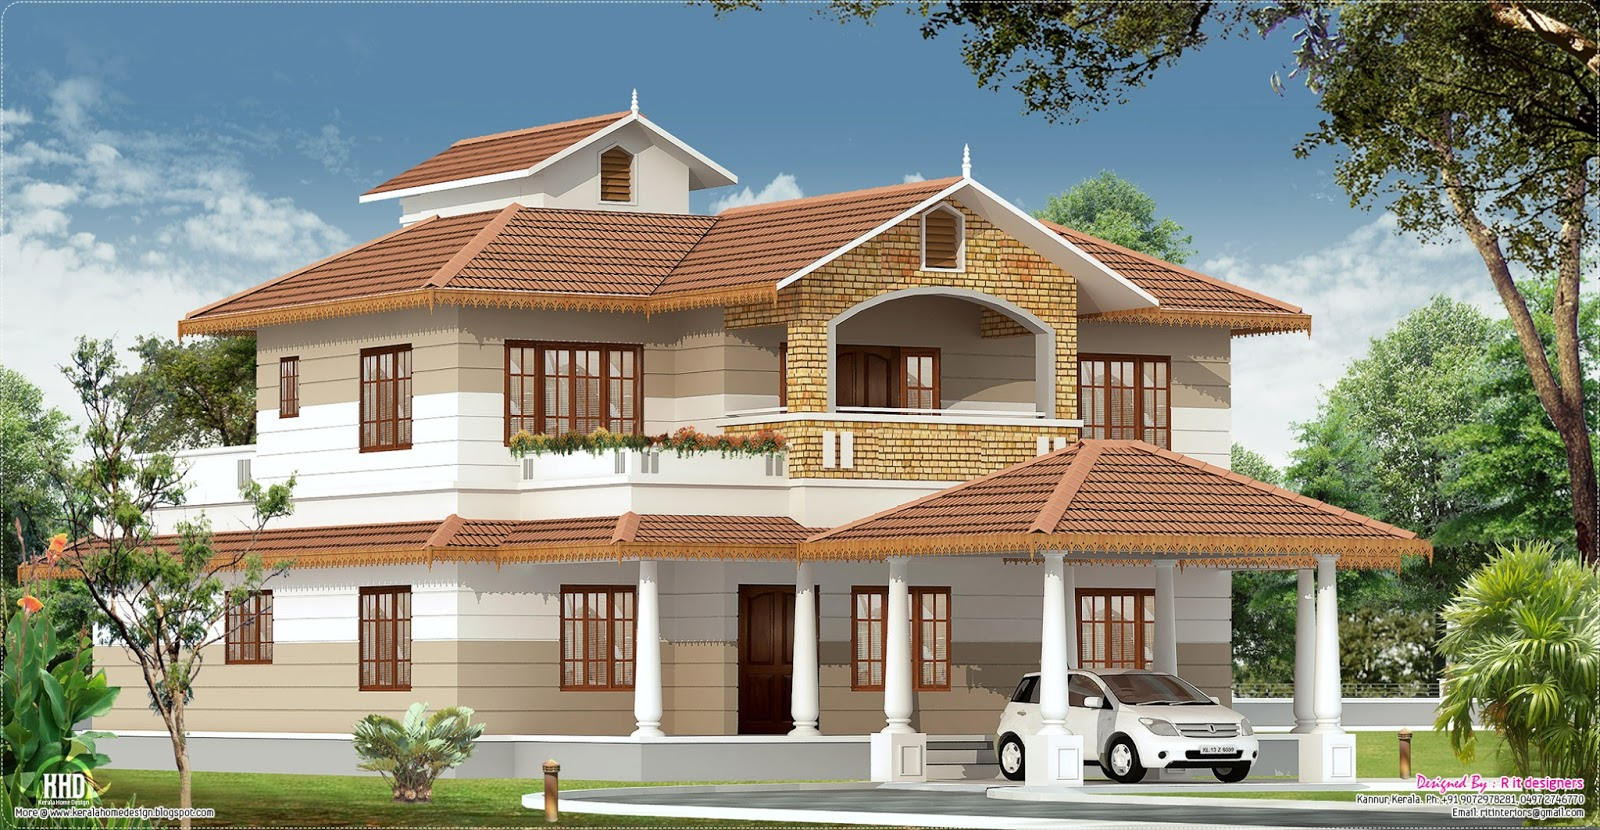 2700 kerala home with interior designs kerala for Latest model house design